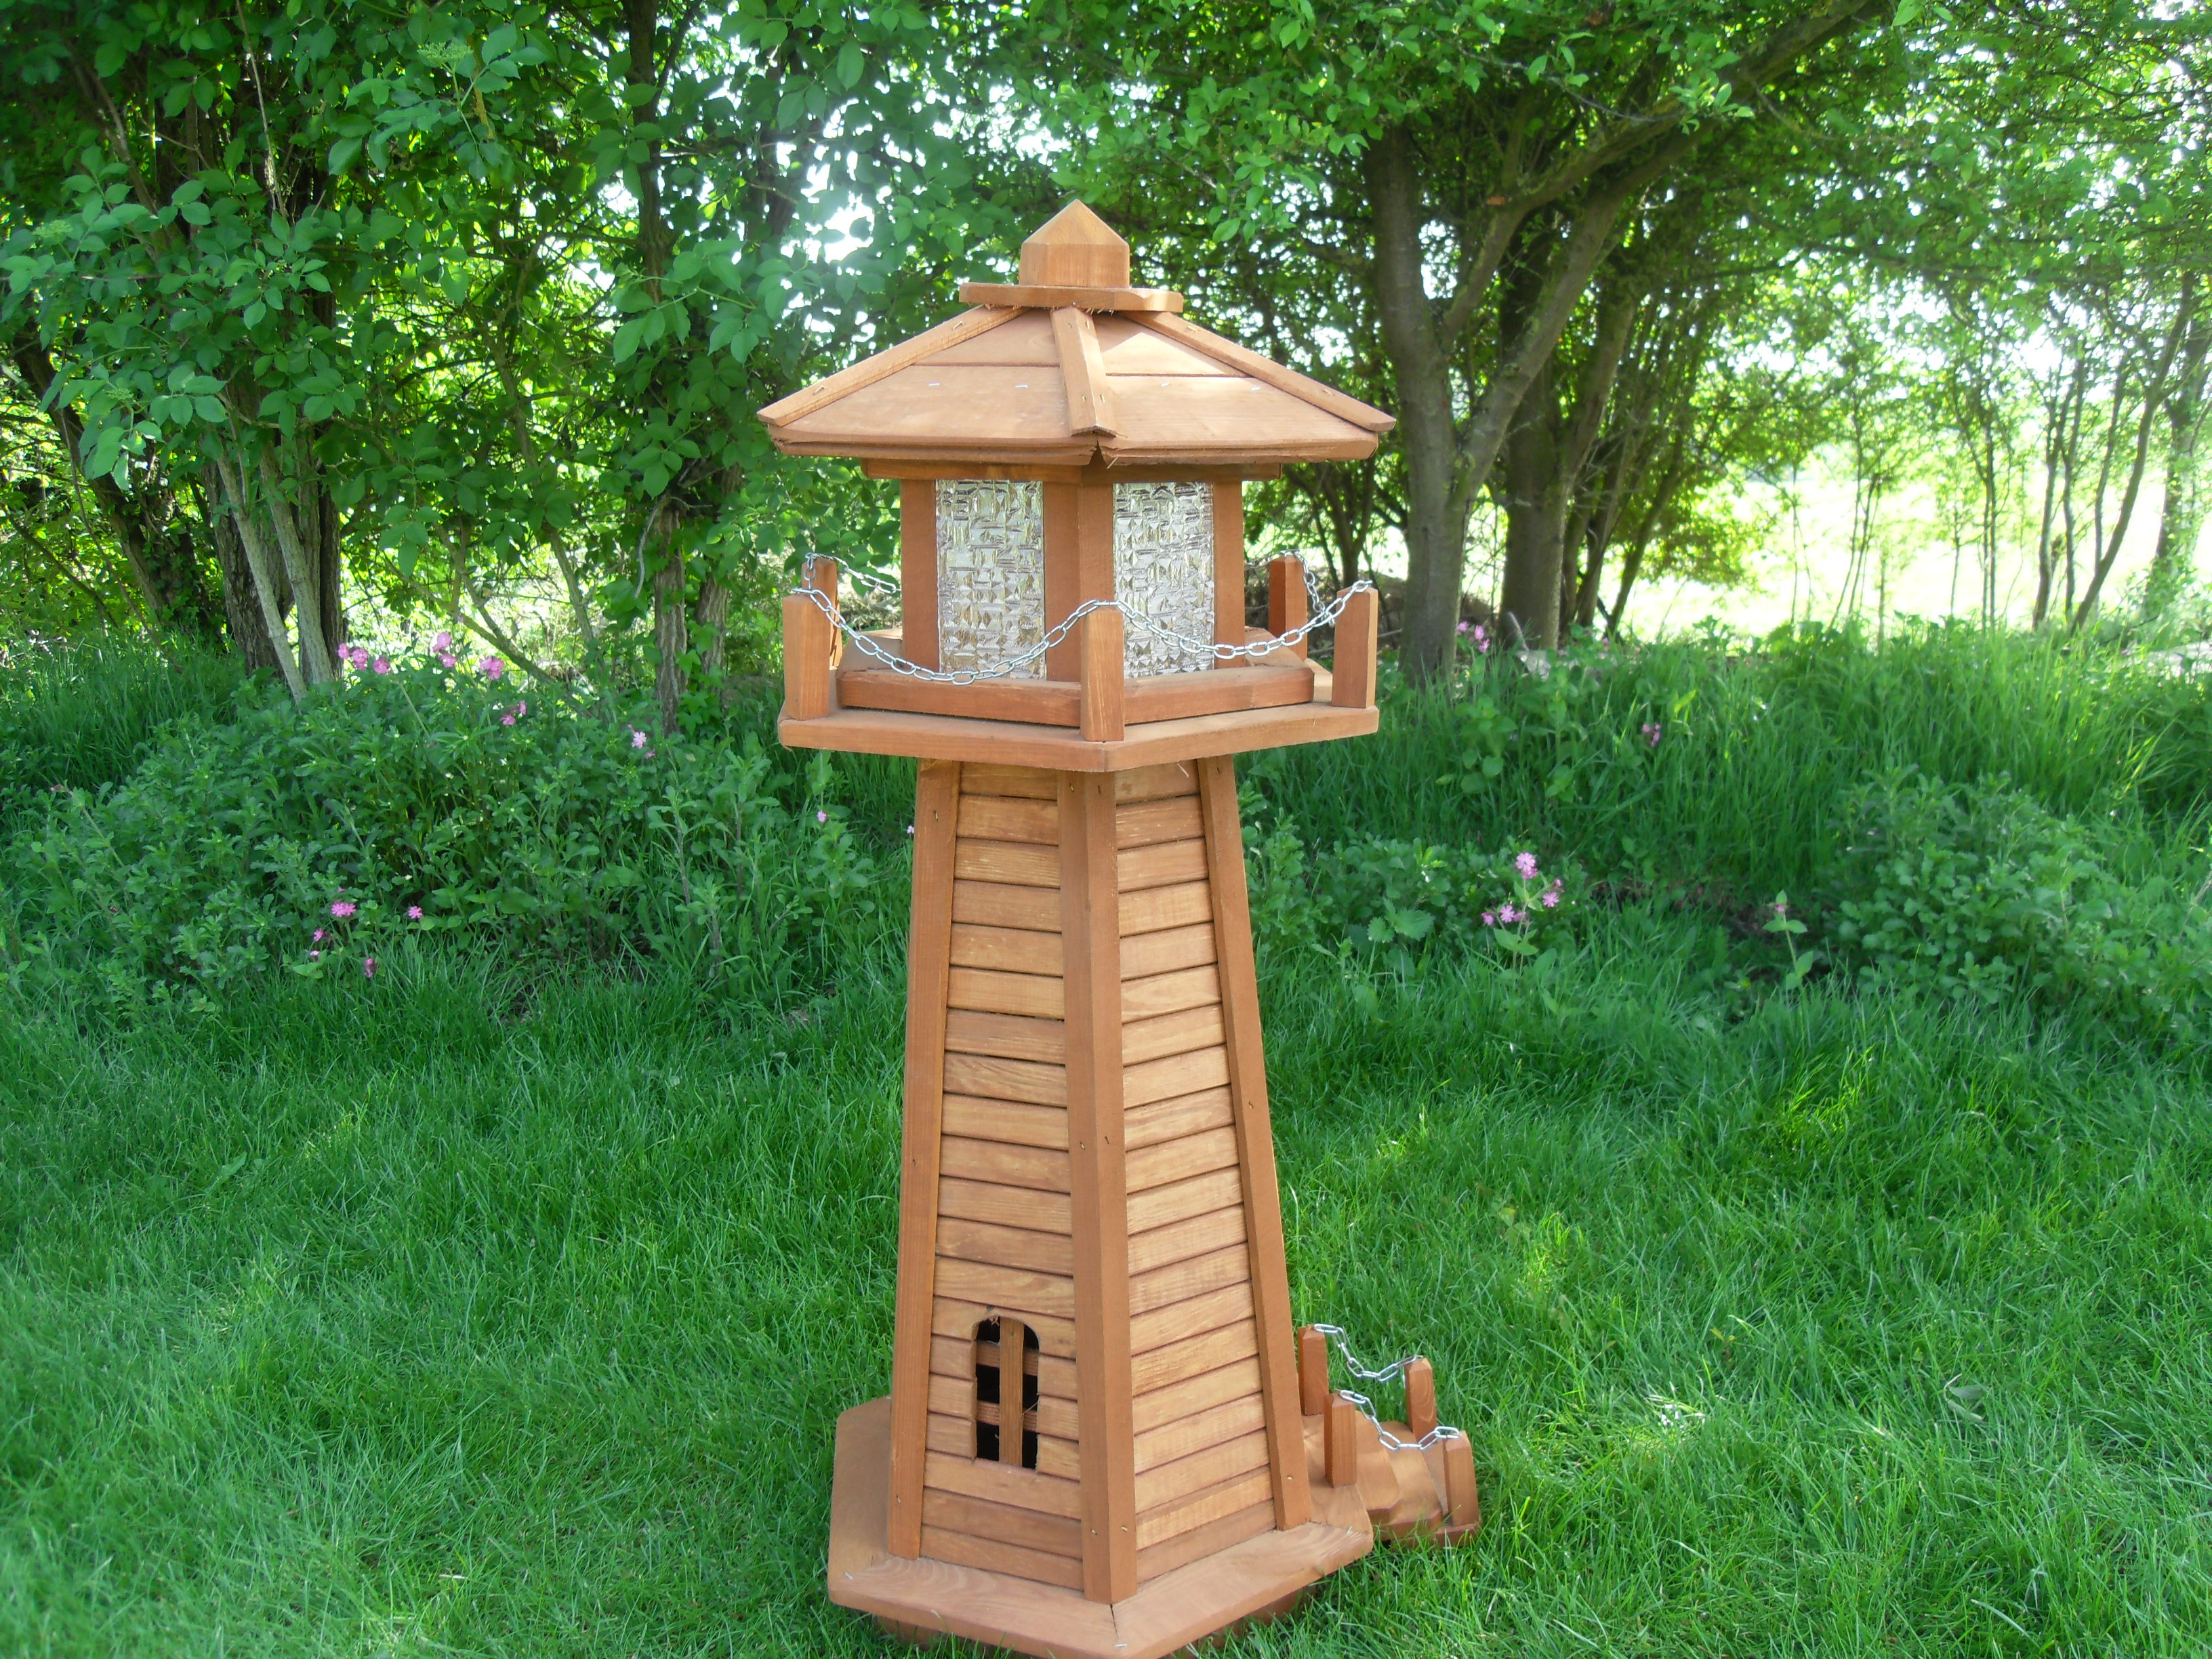 Wooden lighthouse lawn ornaments bing images for Outdoor house ornaments